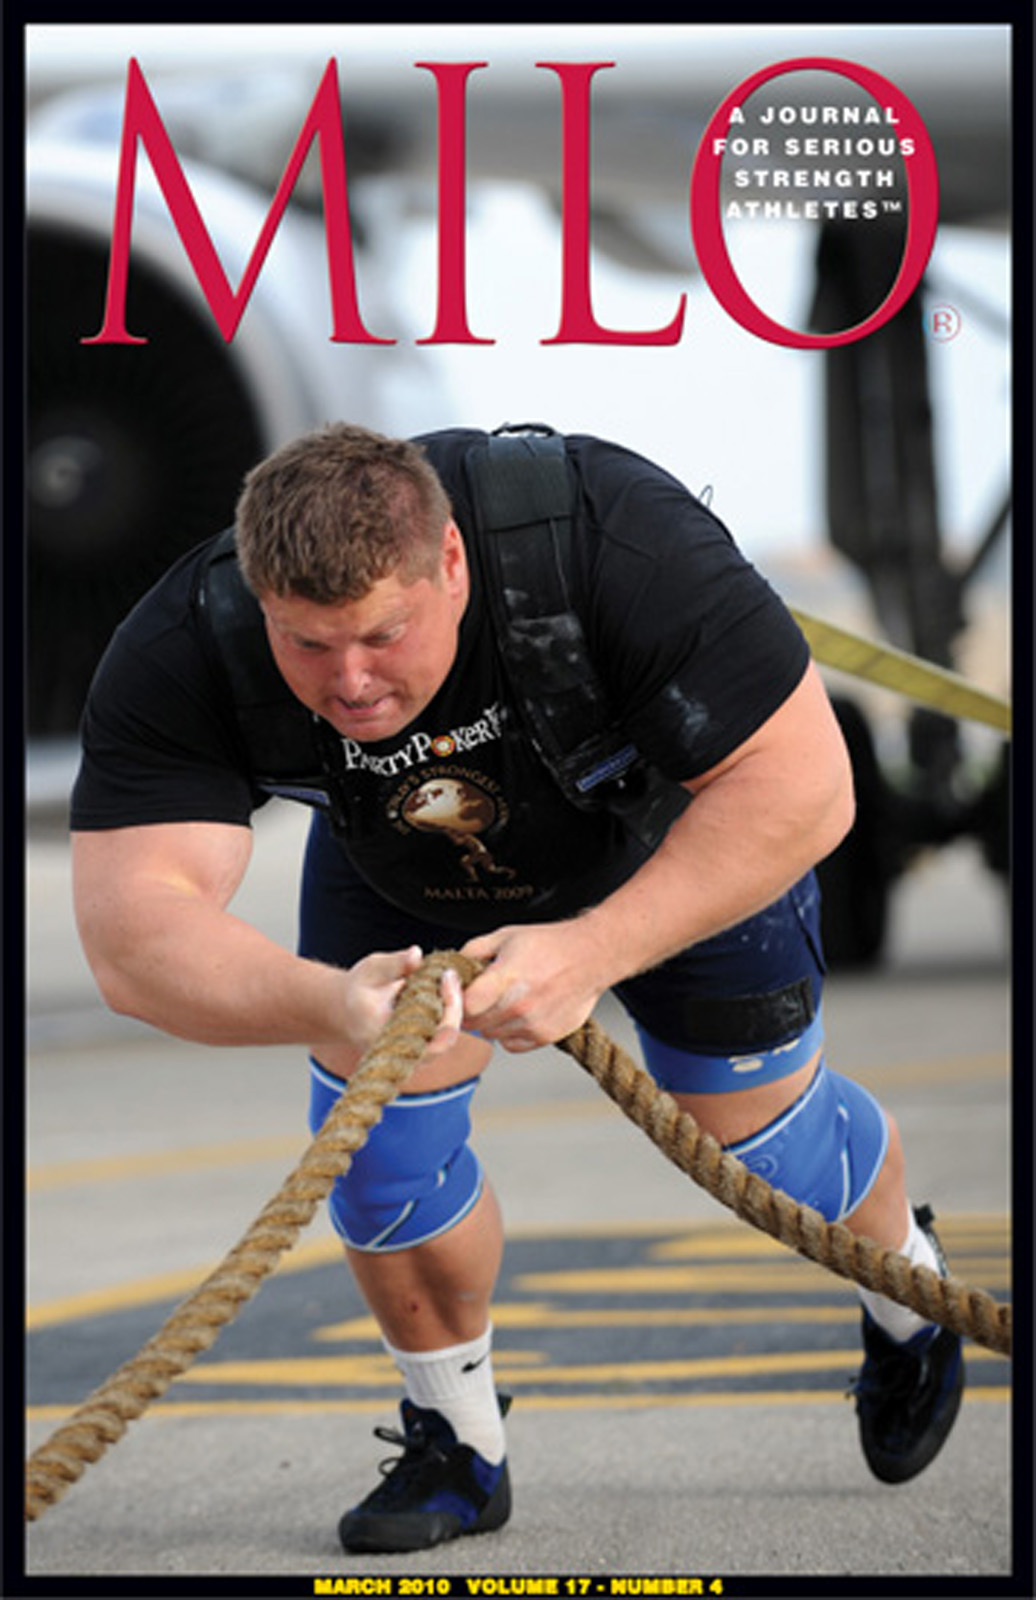 MILO: A Journal for Serious Strength Athletes, March 2010, Vol.  17, No. 4